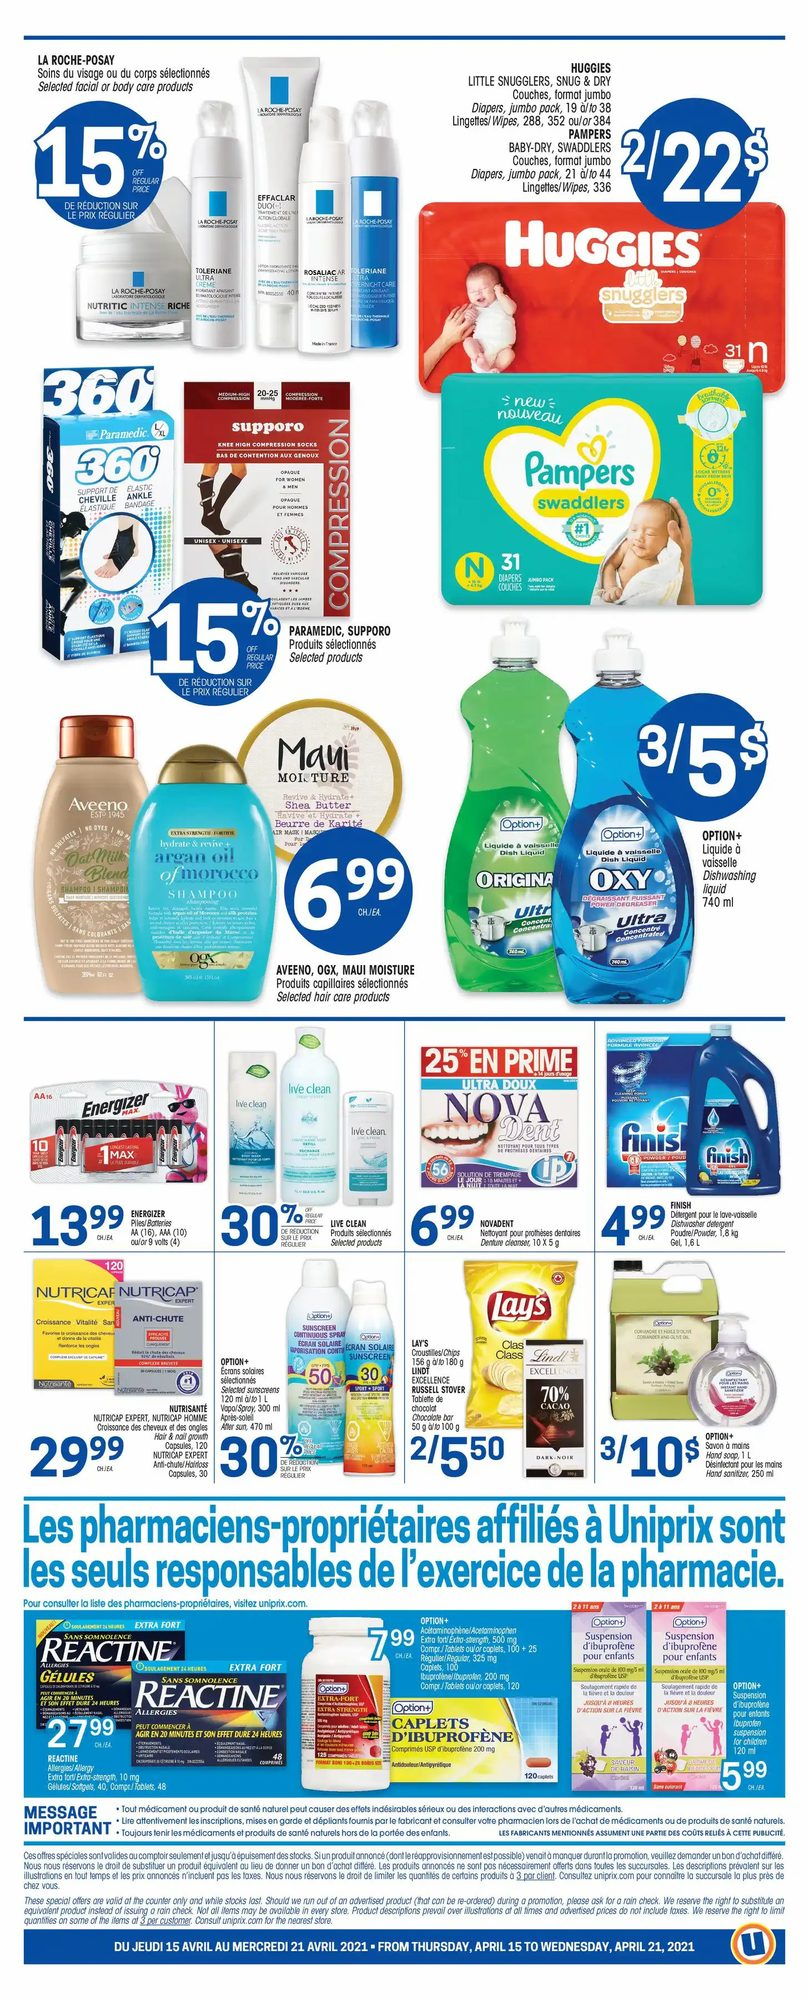 Uniprix - Weekly Flyer Specials - Page 8